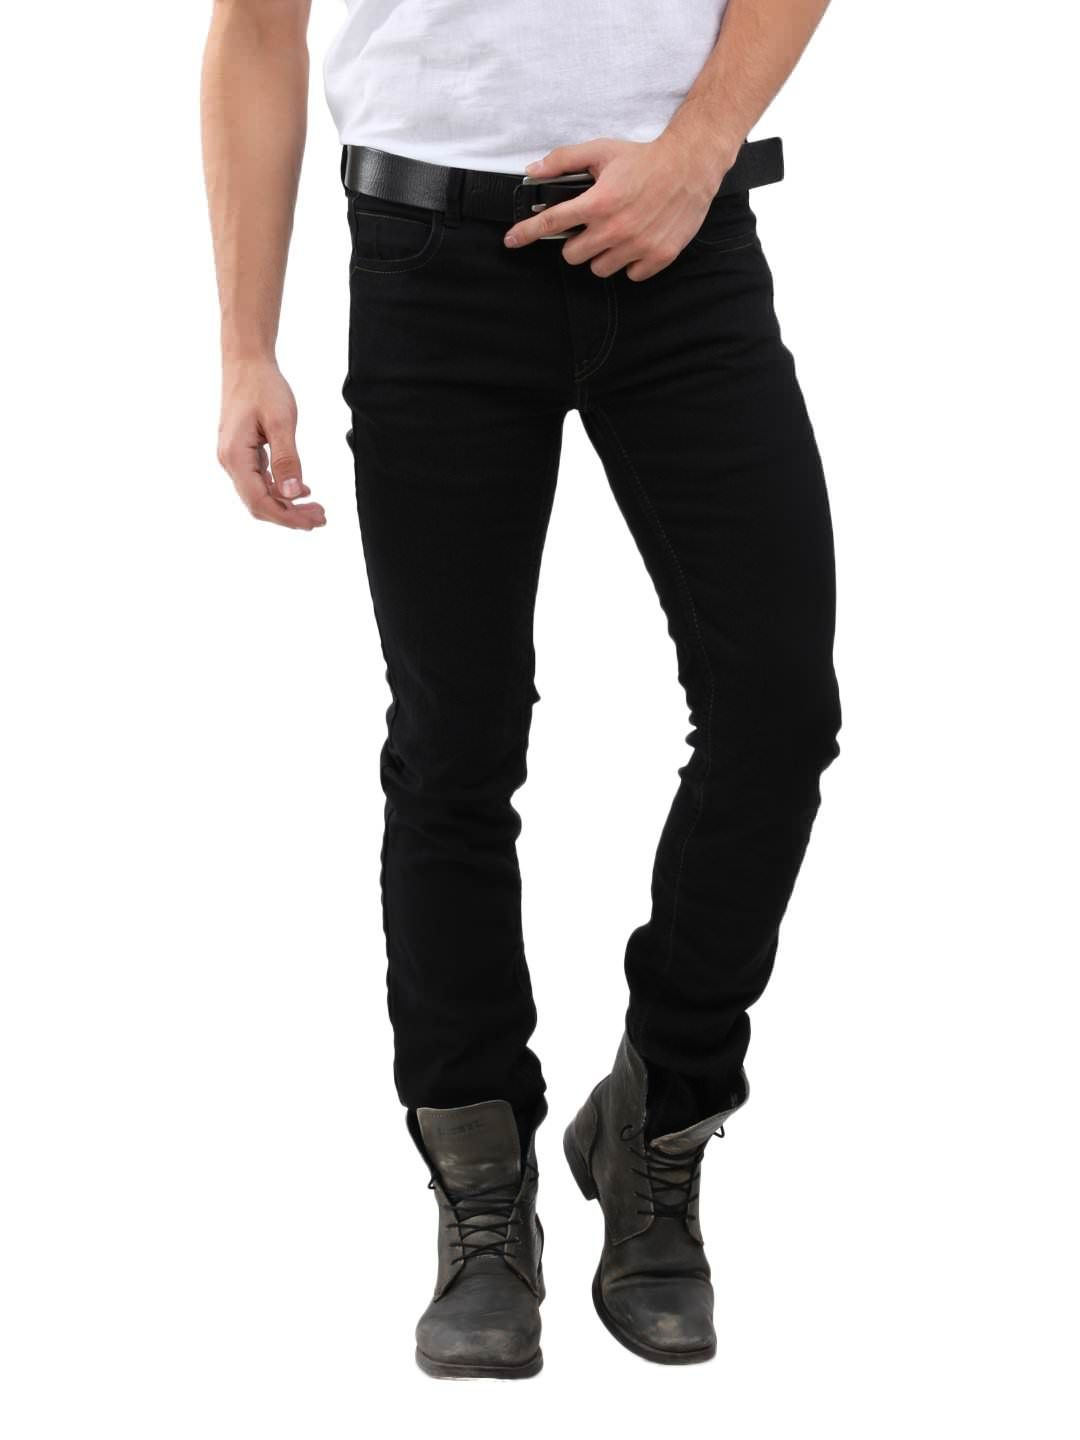 HIPPIE GUY WITH BLACK JEANS - Google Search